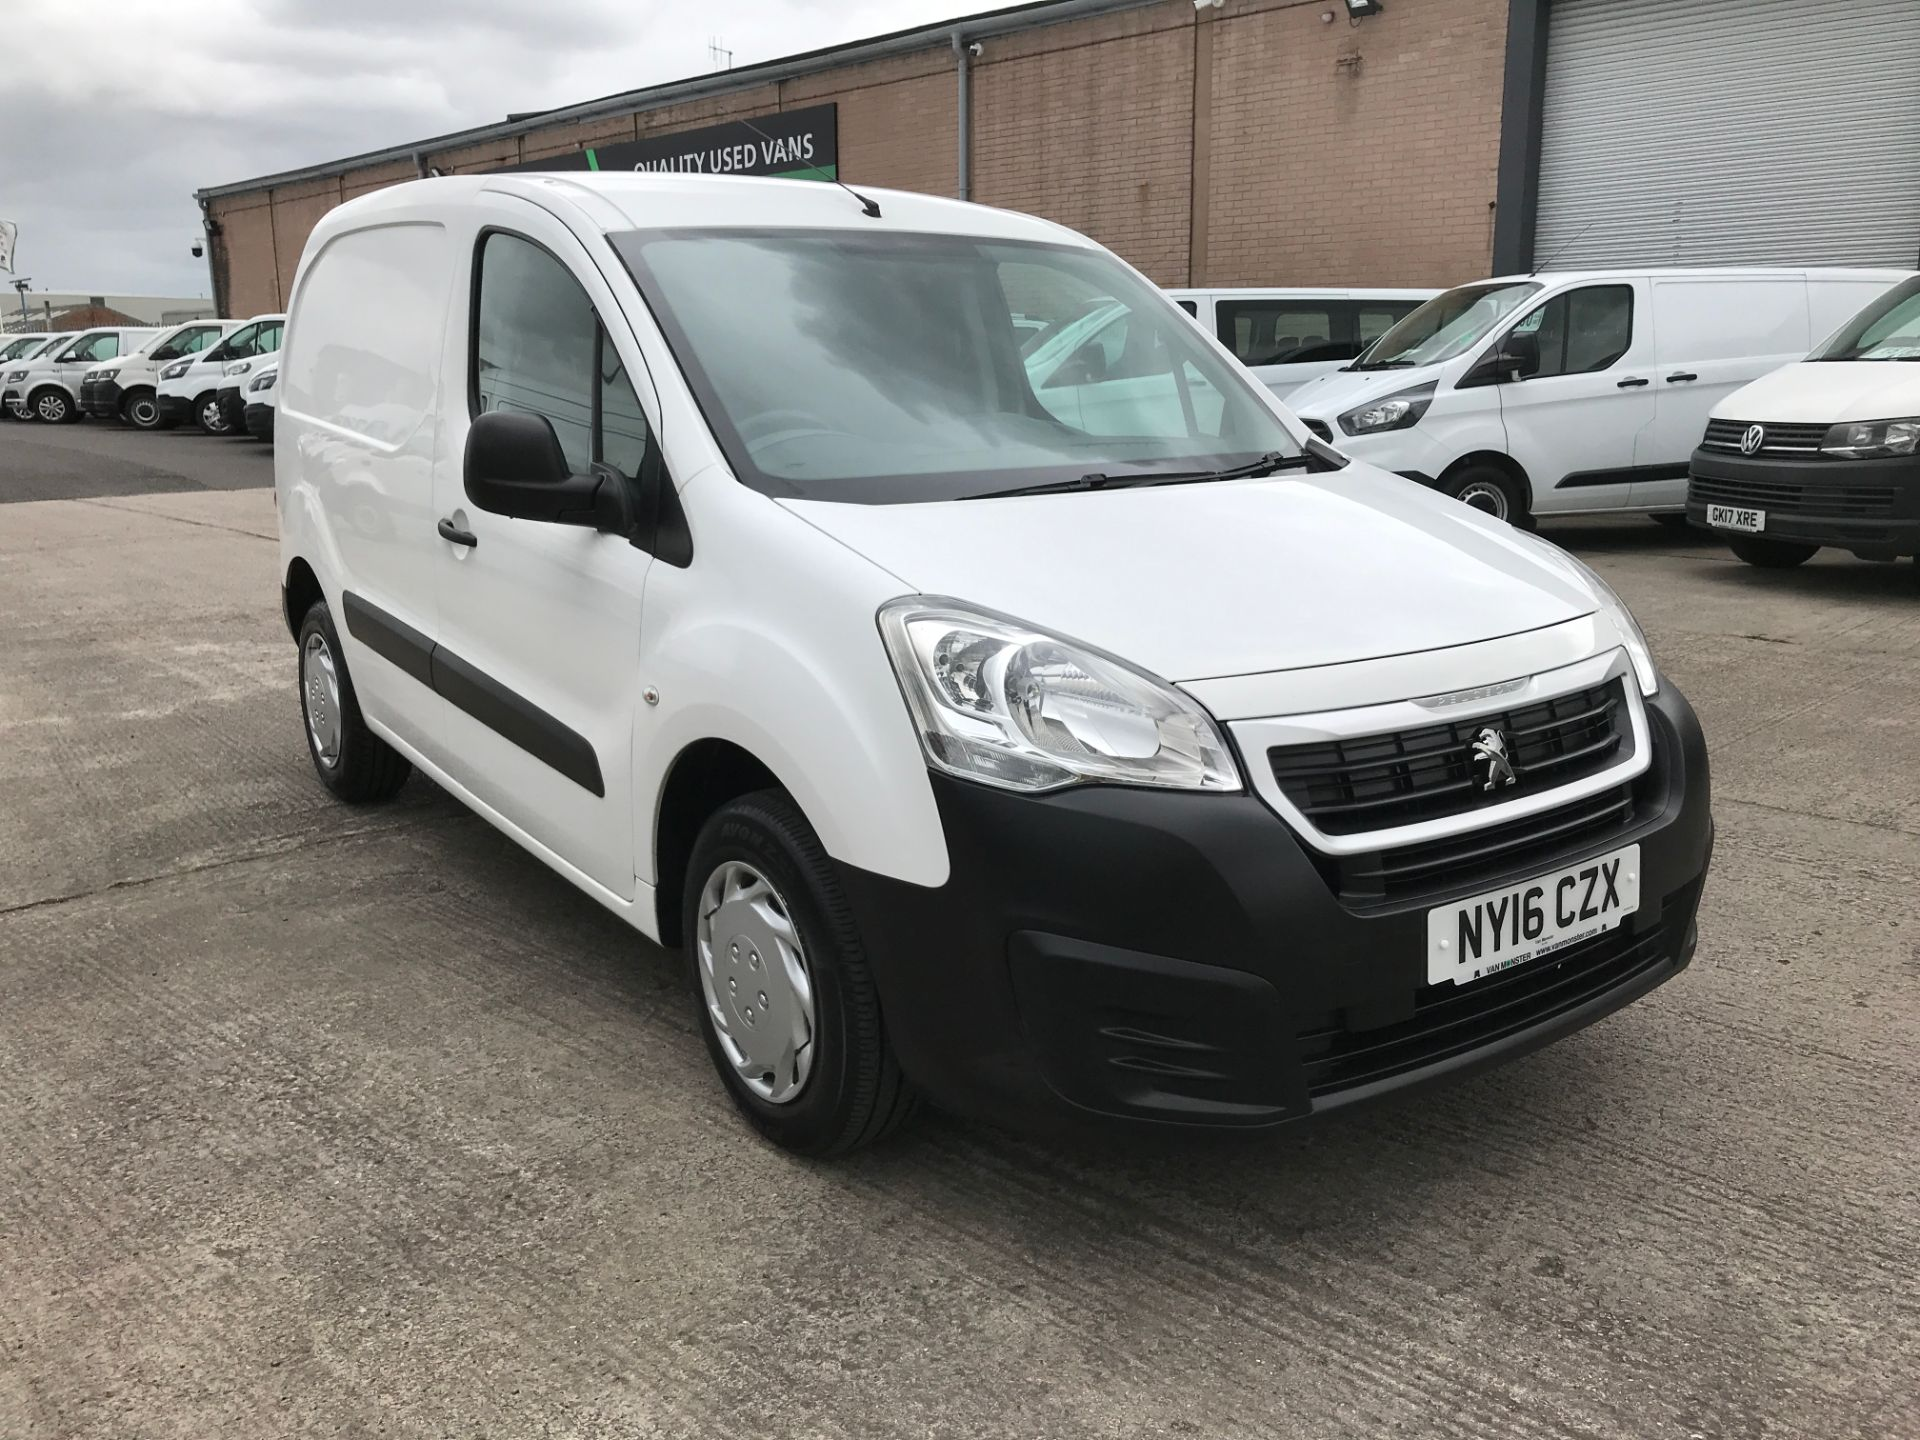 2016 Peugeot Partner L1 850 S 1.6HDI 92PS EURO 5 (NY16CZX)